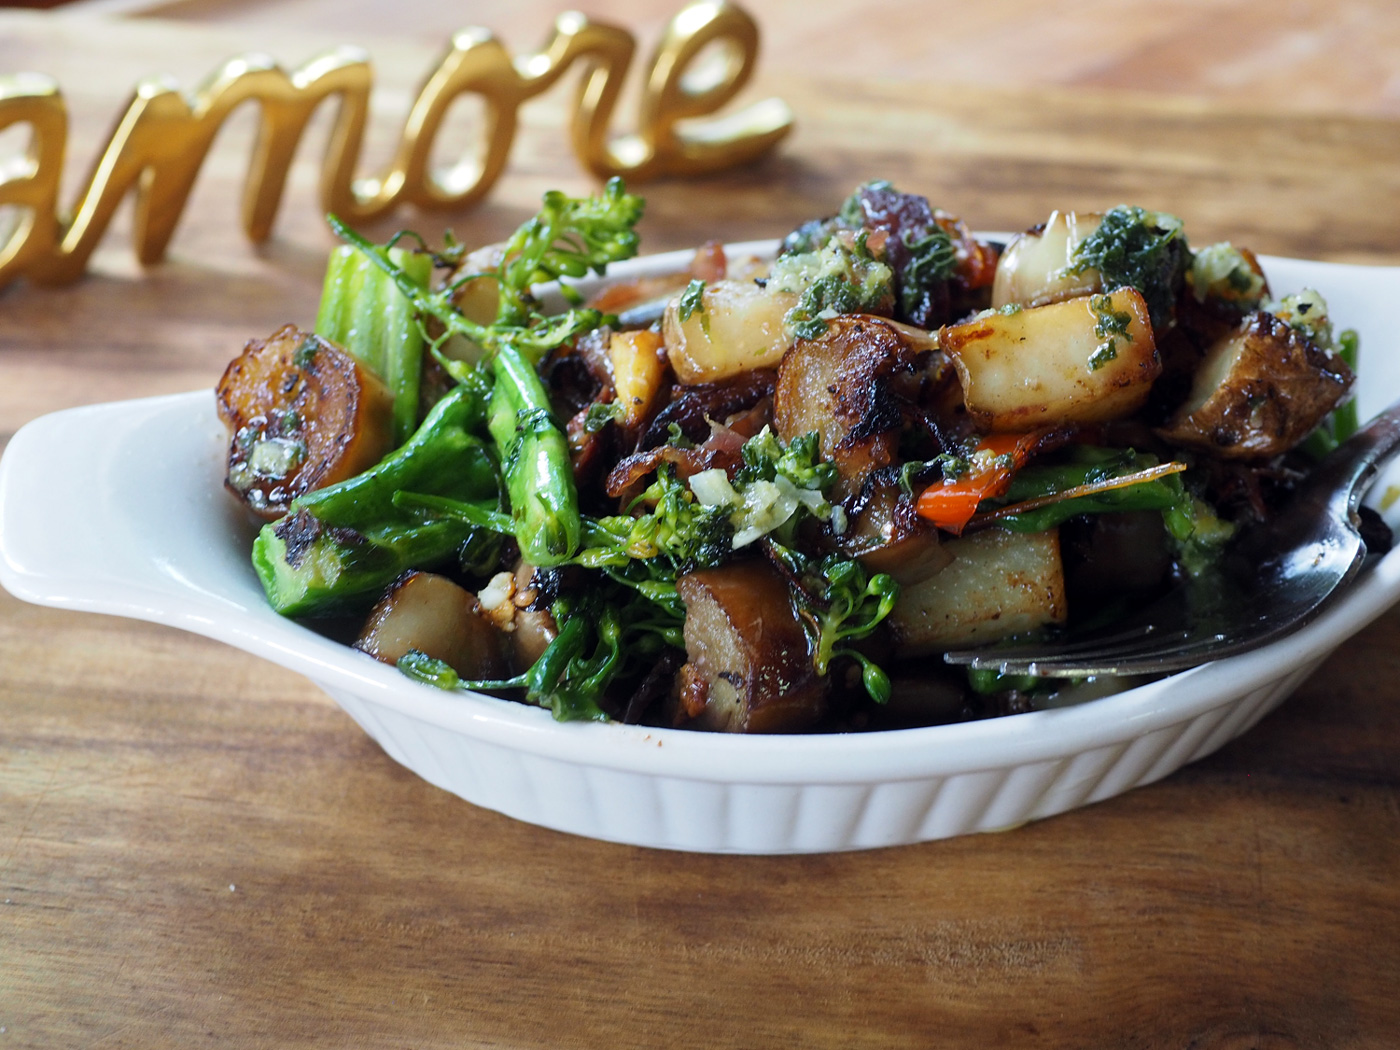 With some sautéd broccolini, this made a tasty lunch dish.